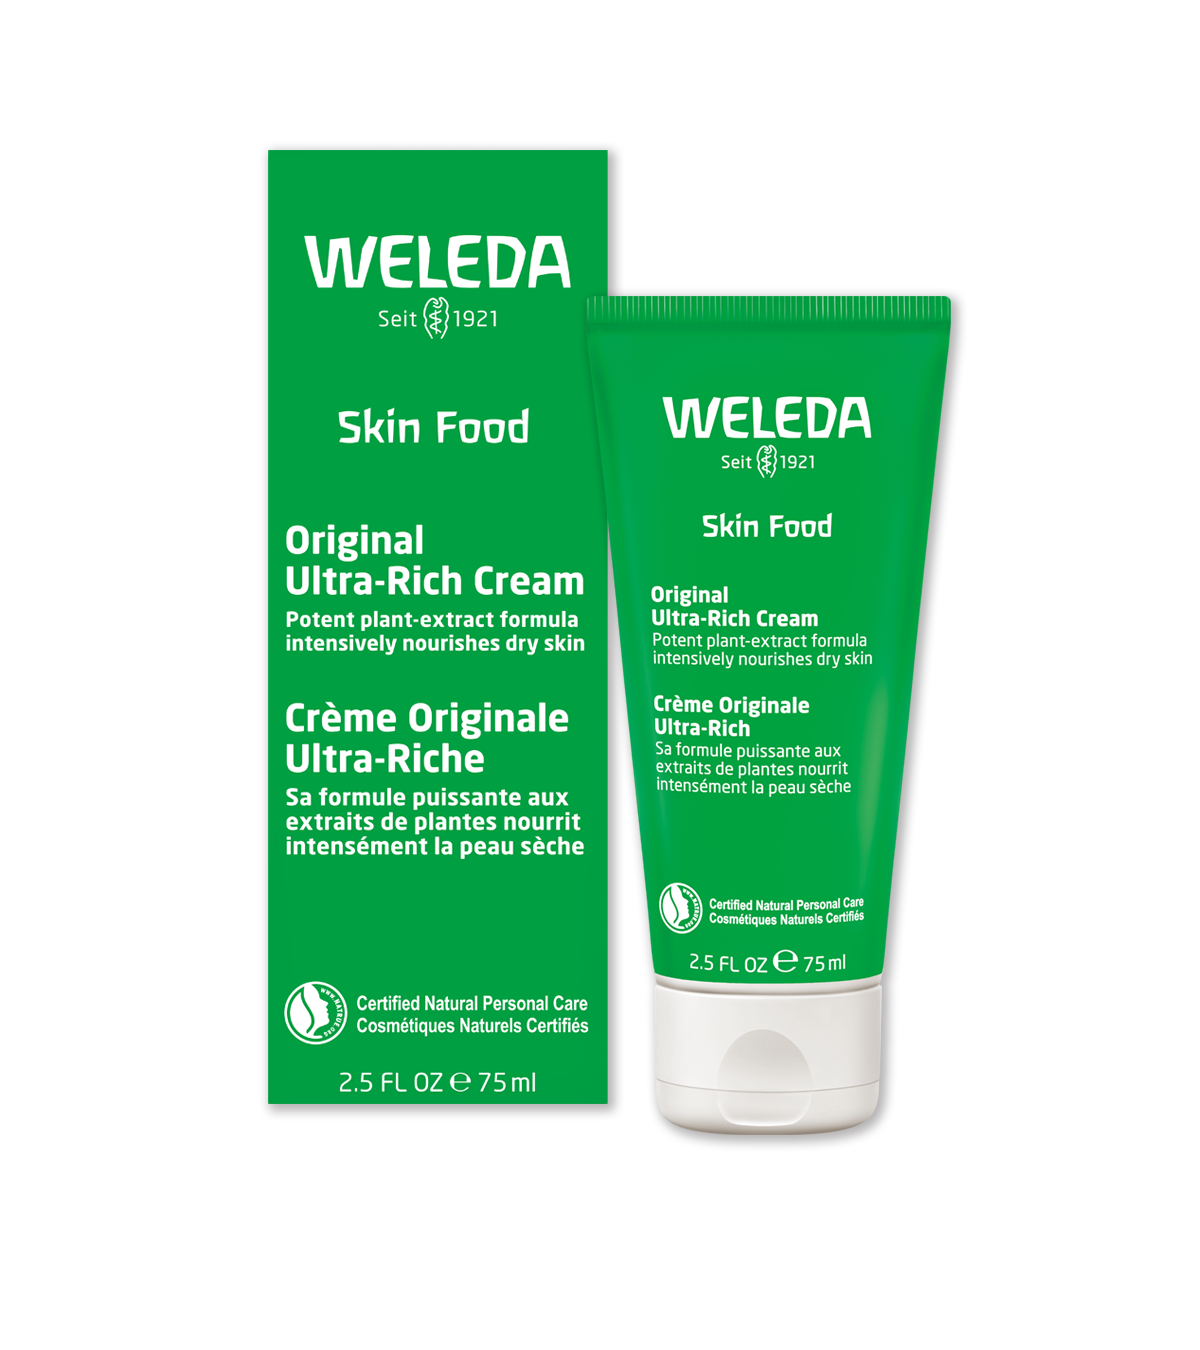 Weleda Body Lotion & Skin Food, Available at Weleda